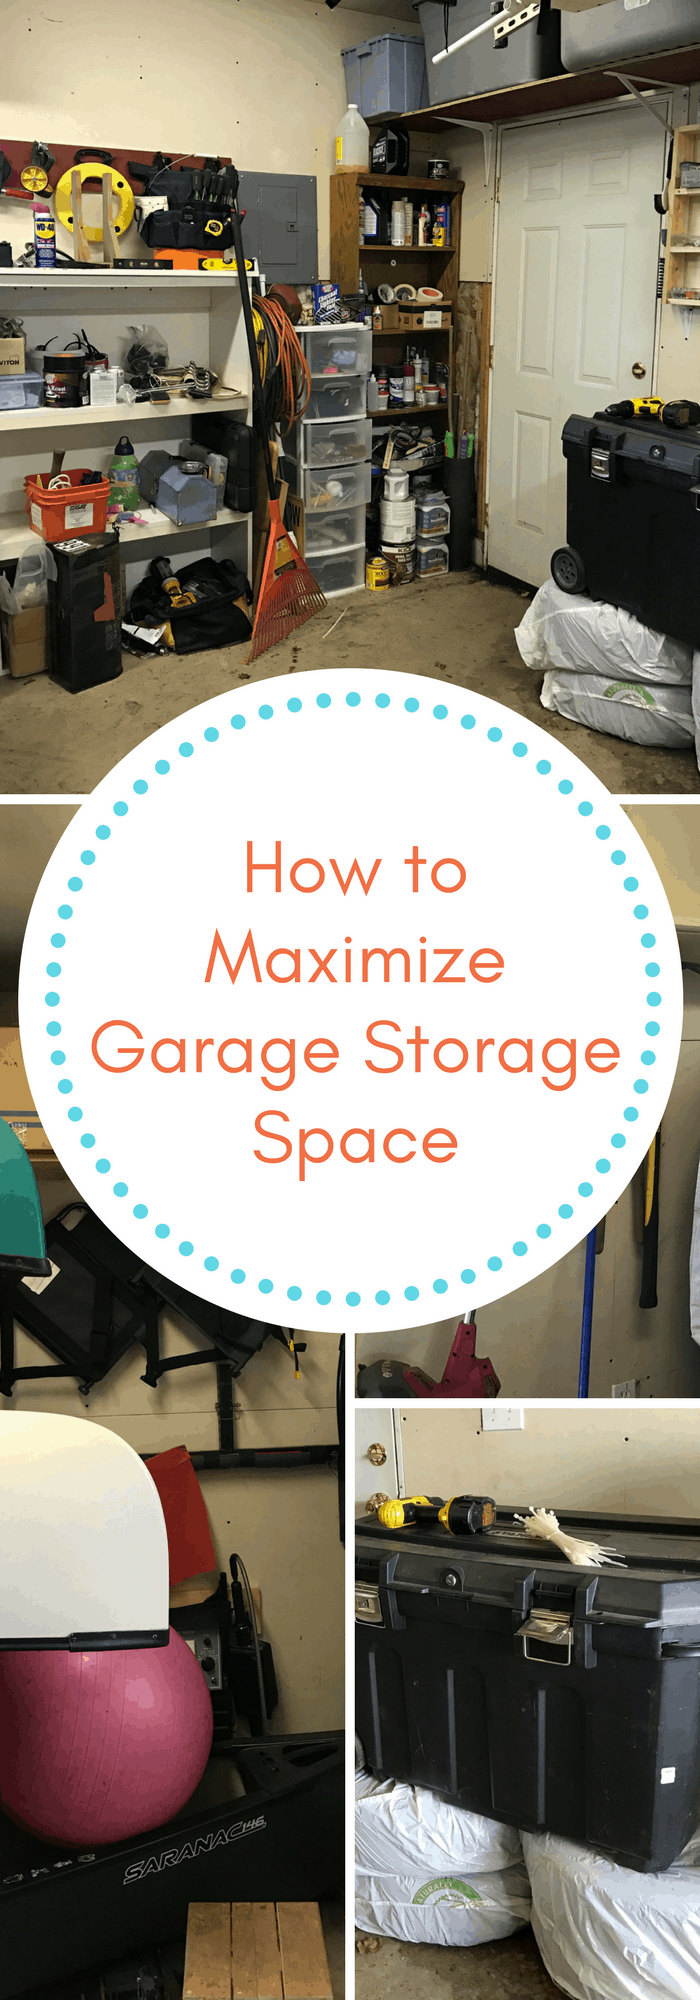 Home and DIY Maximize Garage Storage space and keep it organized